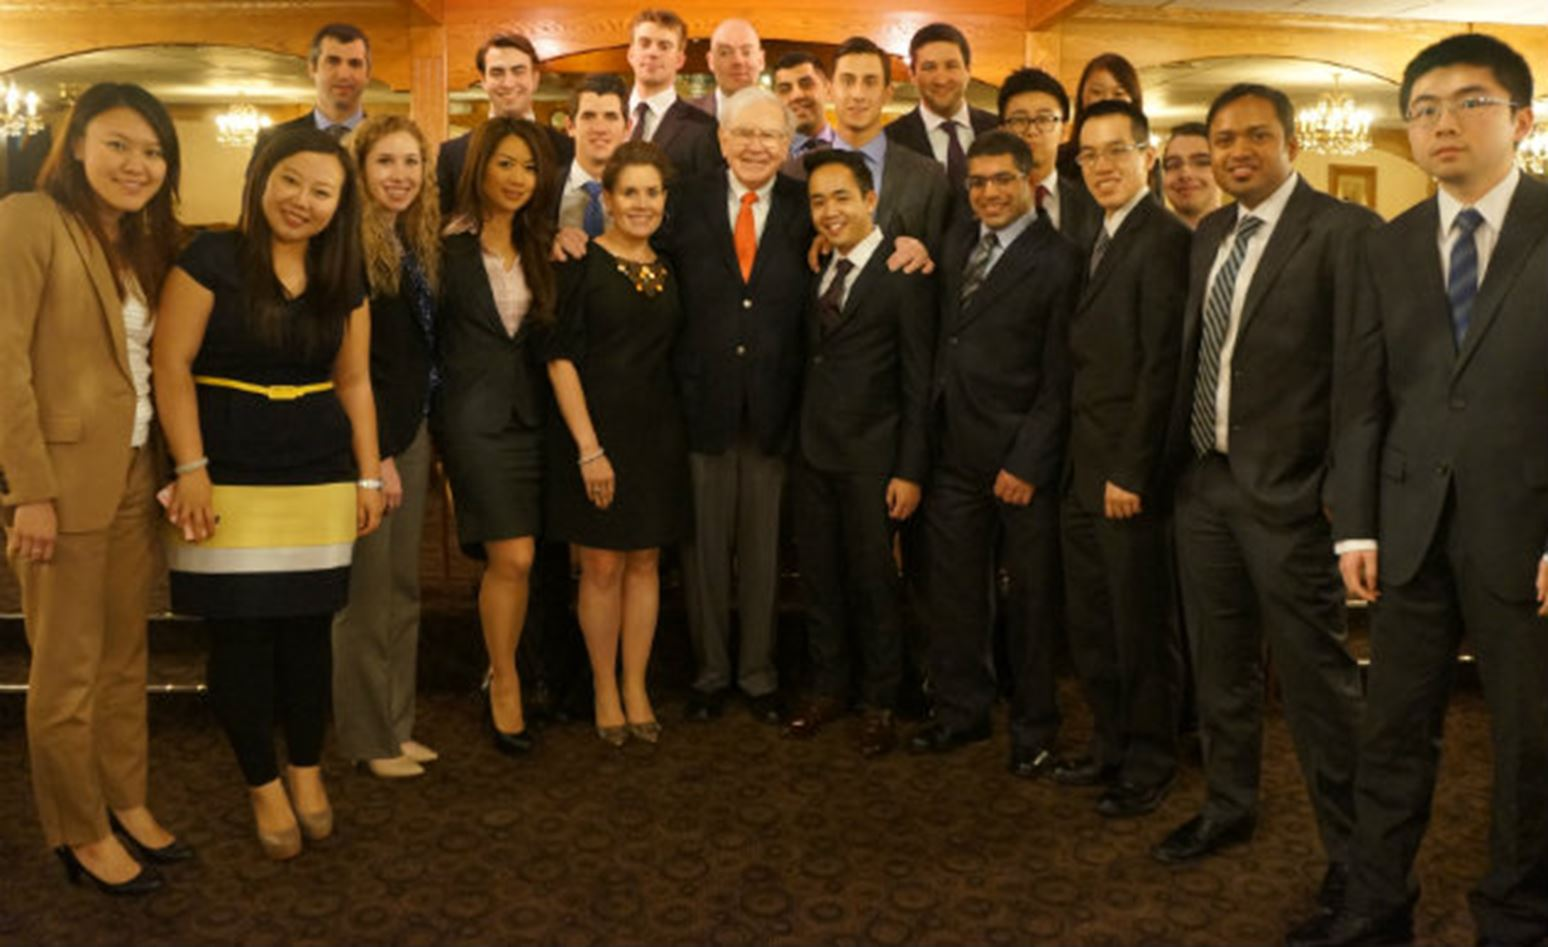 Meeting famed investor Warren Buffett a dream come true for Ivey students